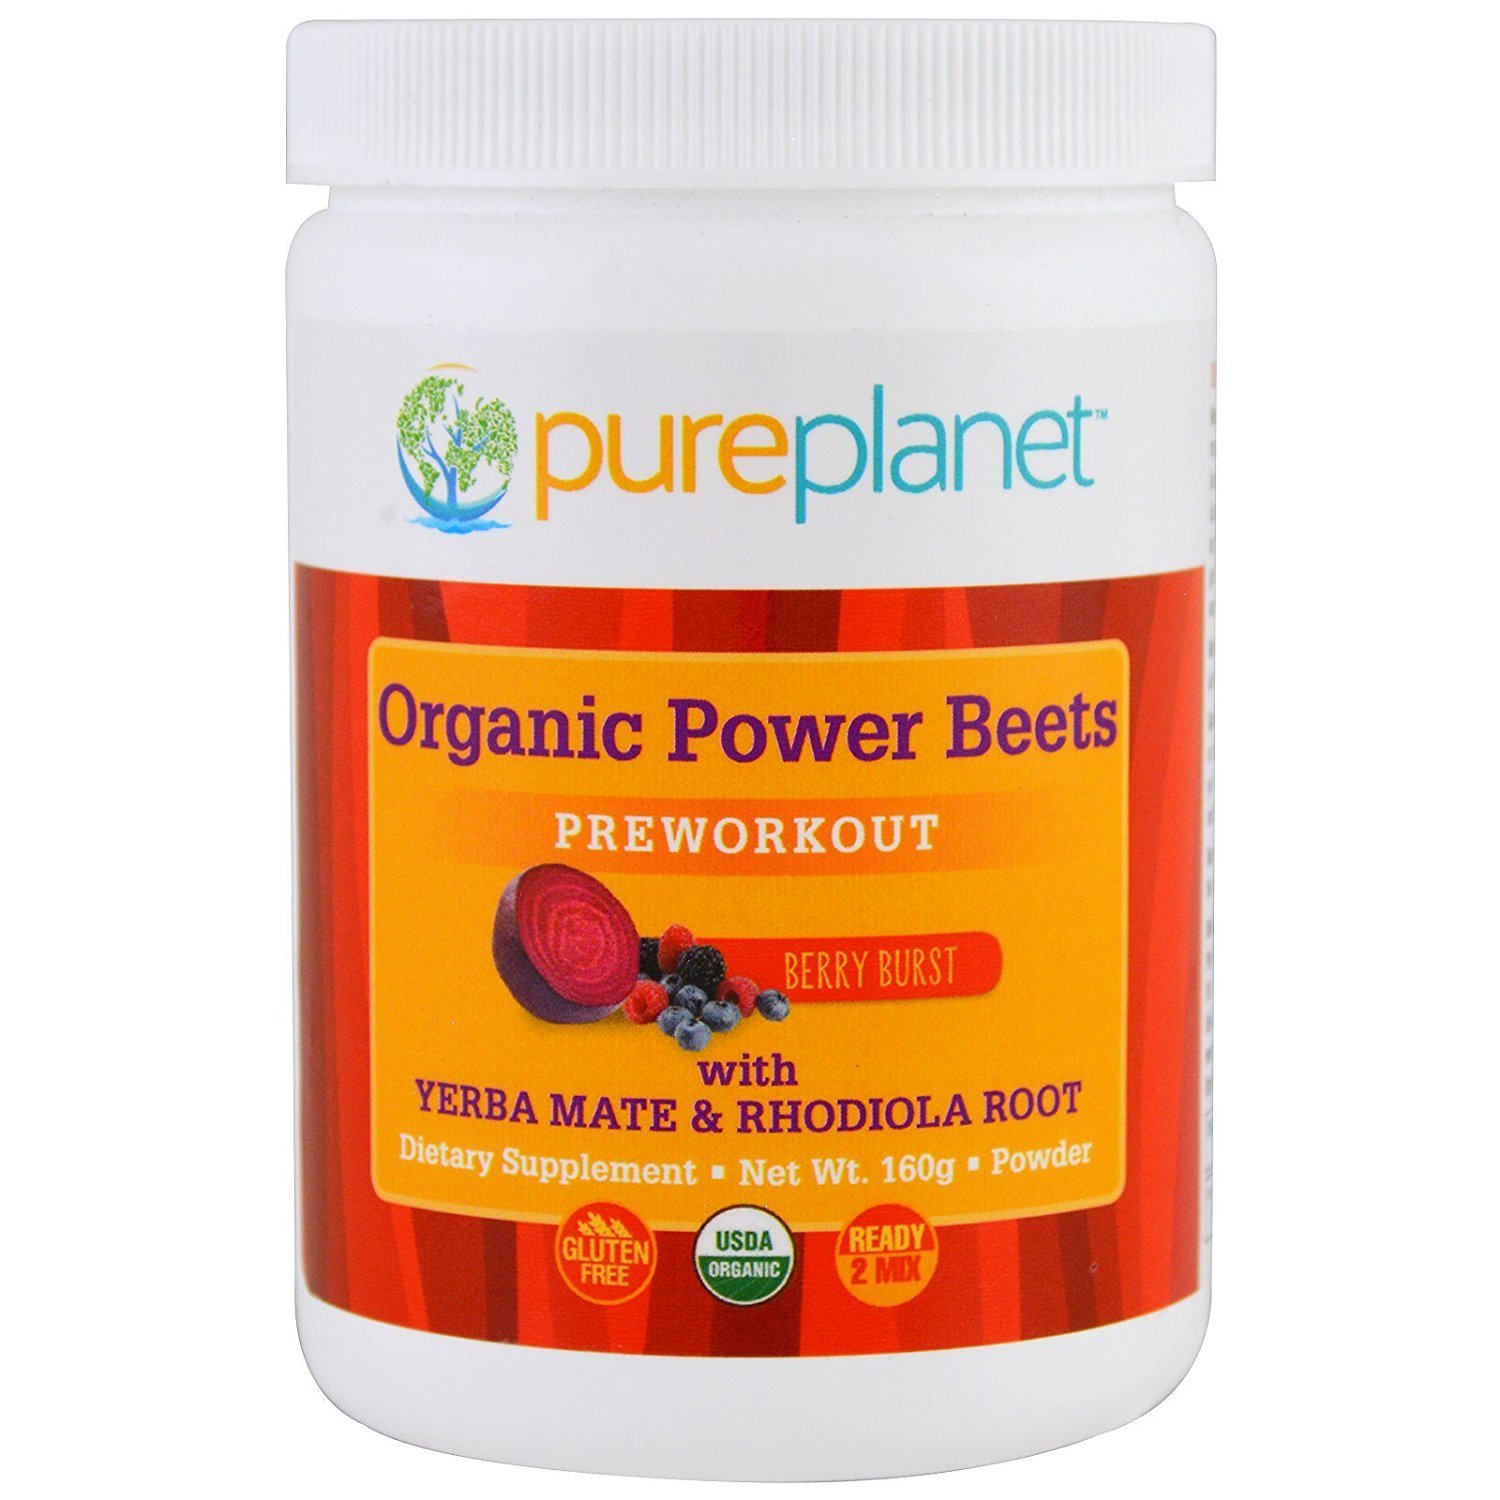 Pure Planet Organic Power Beets Preworkout Berry Burst 160 g